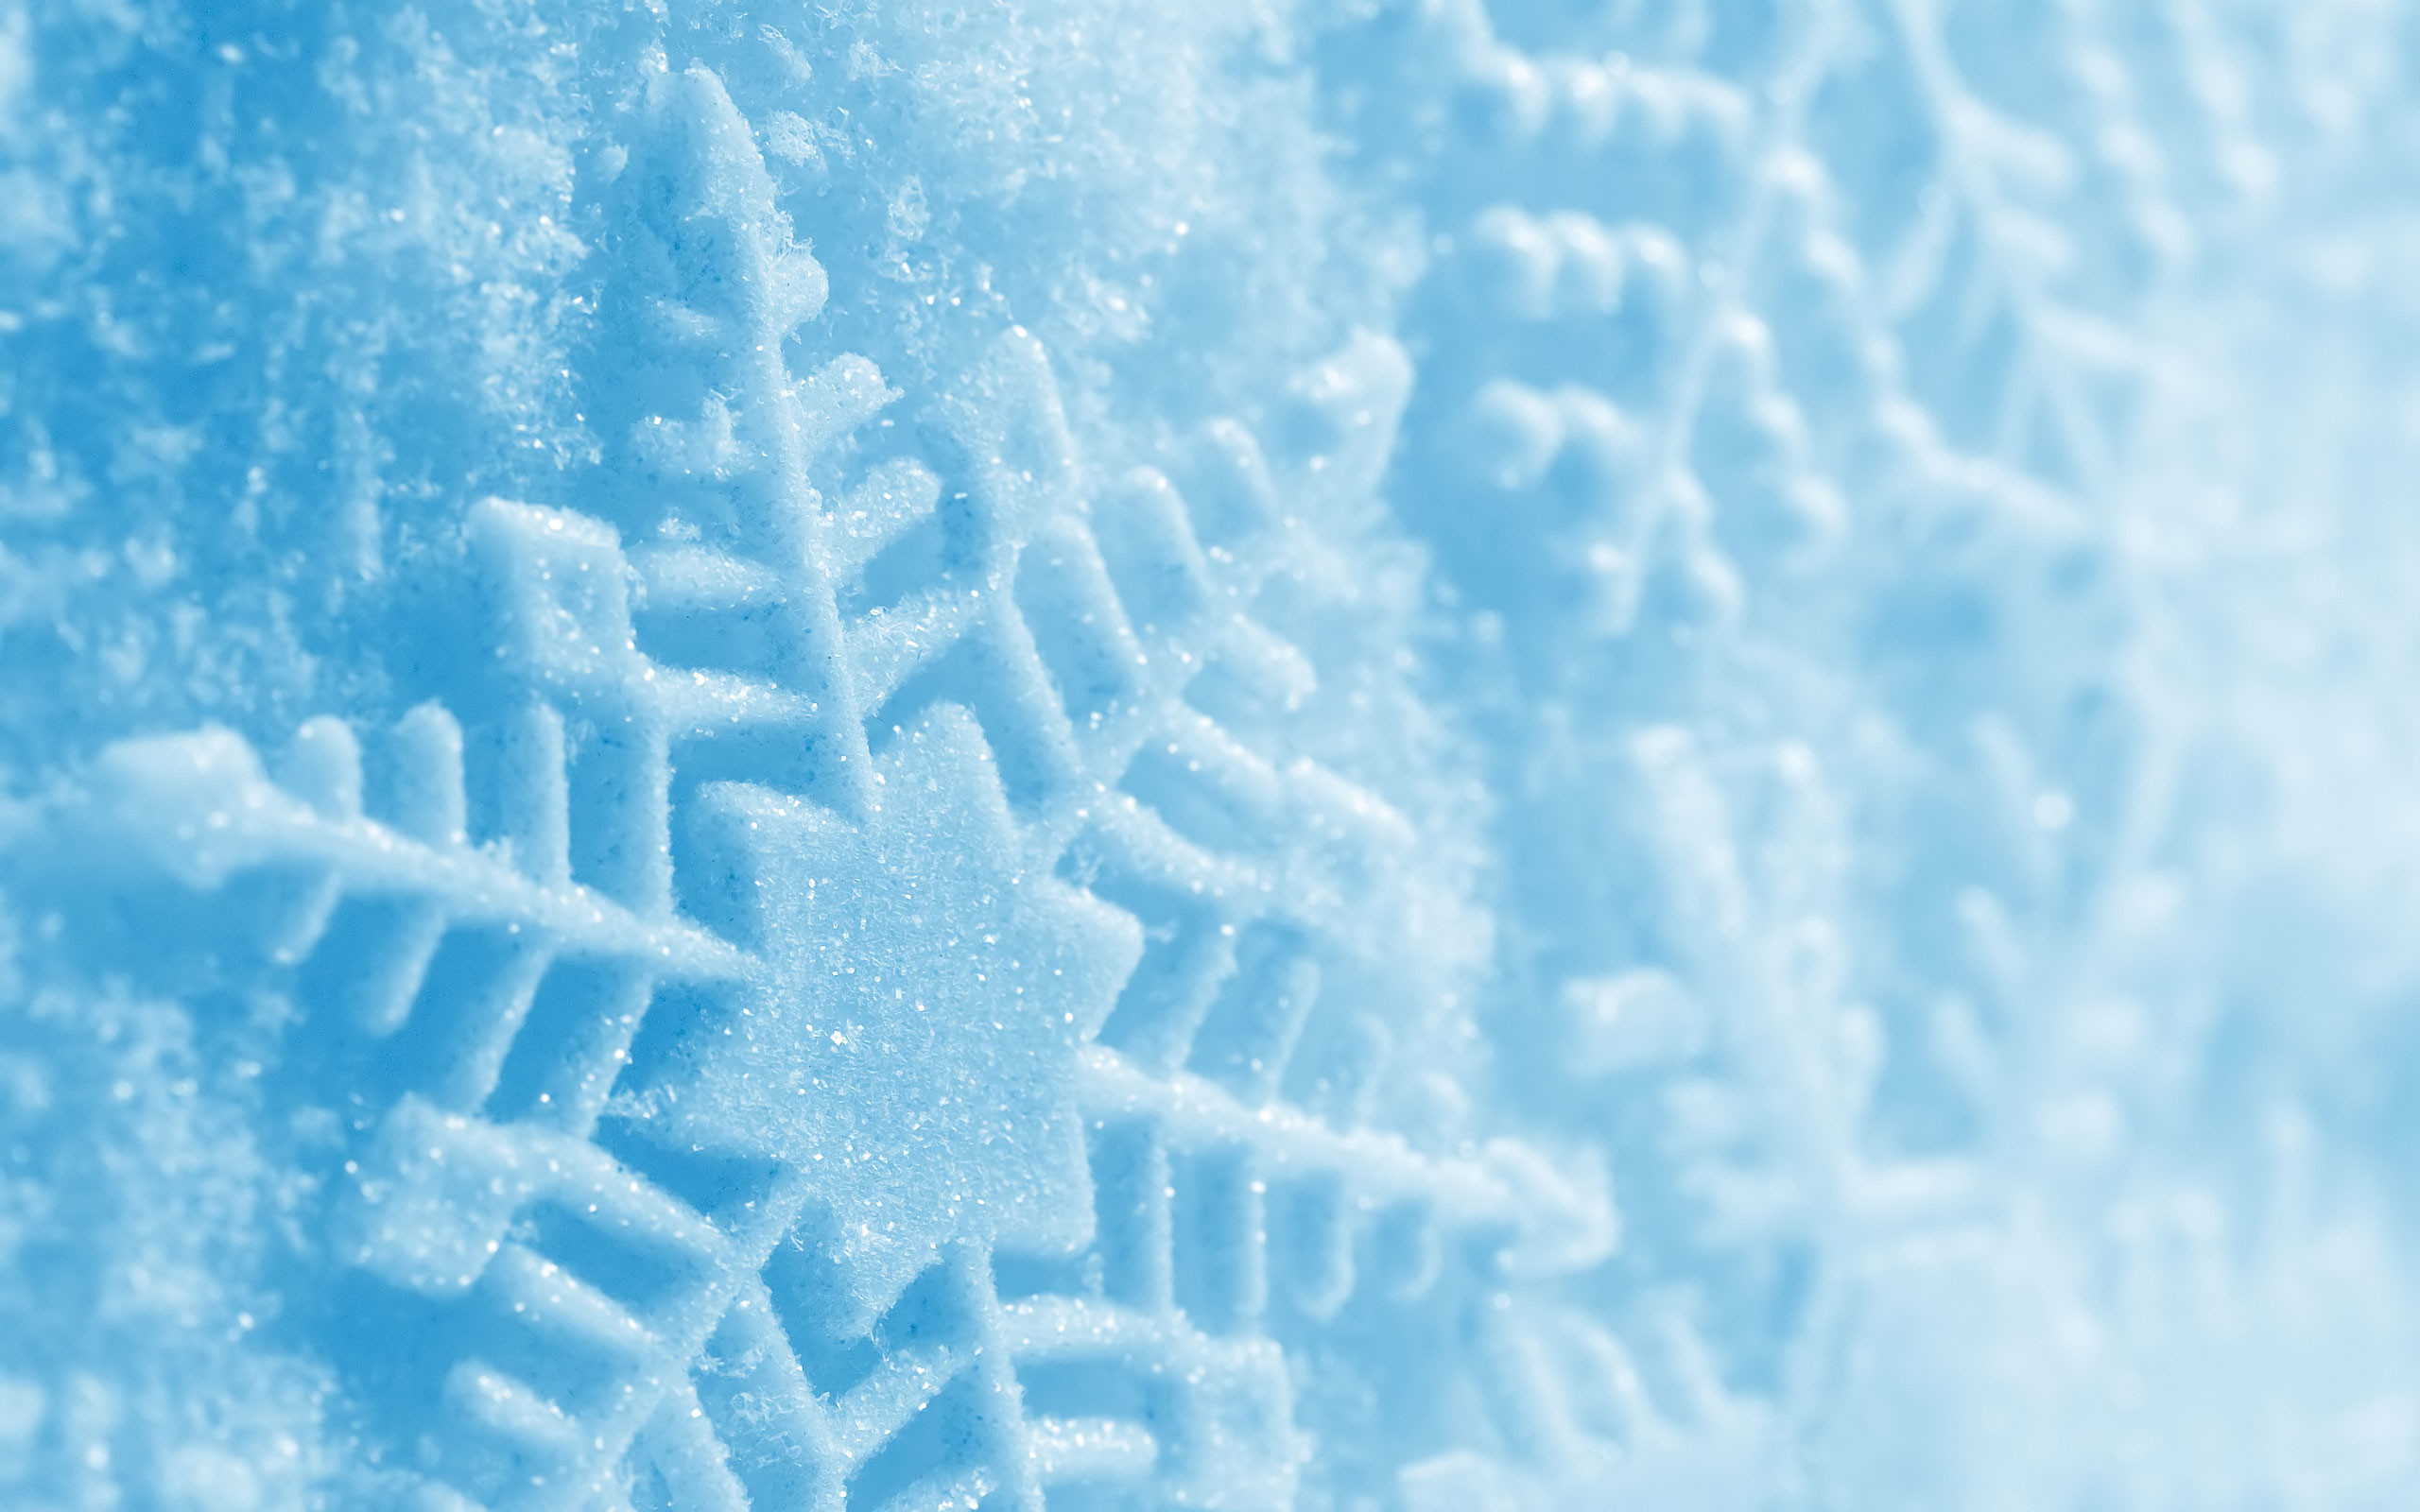 Animated Snow Backgrounds   wallpaper, wallpaper hd, background .